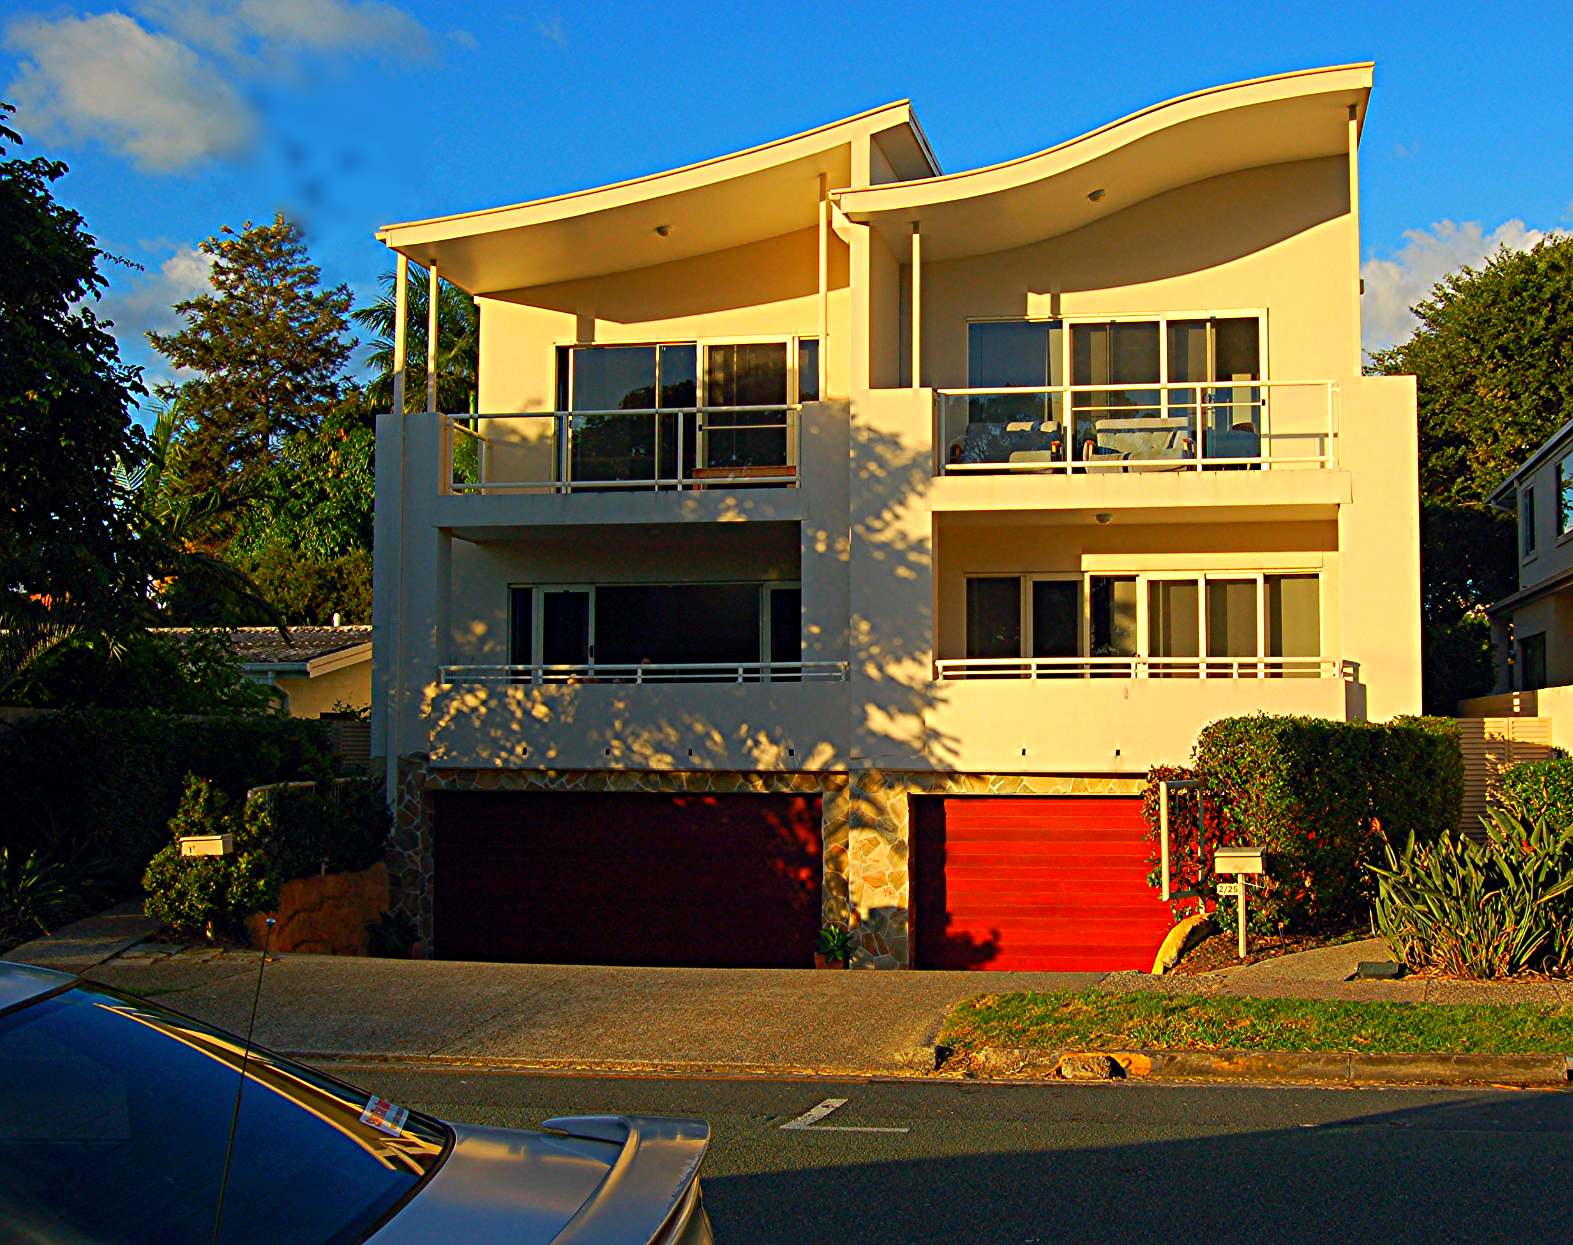 Duplex, Chevron Island; Gold Coast